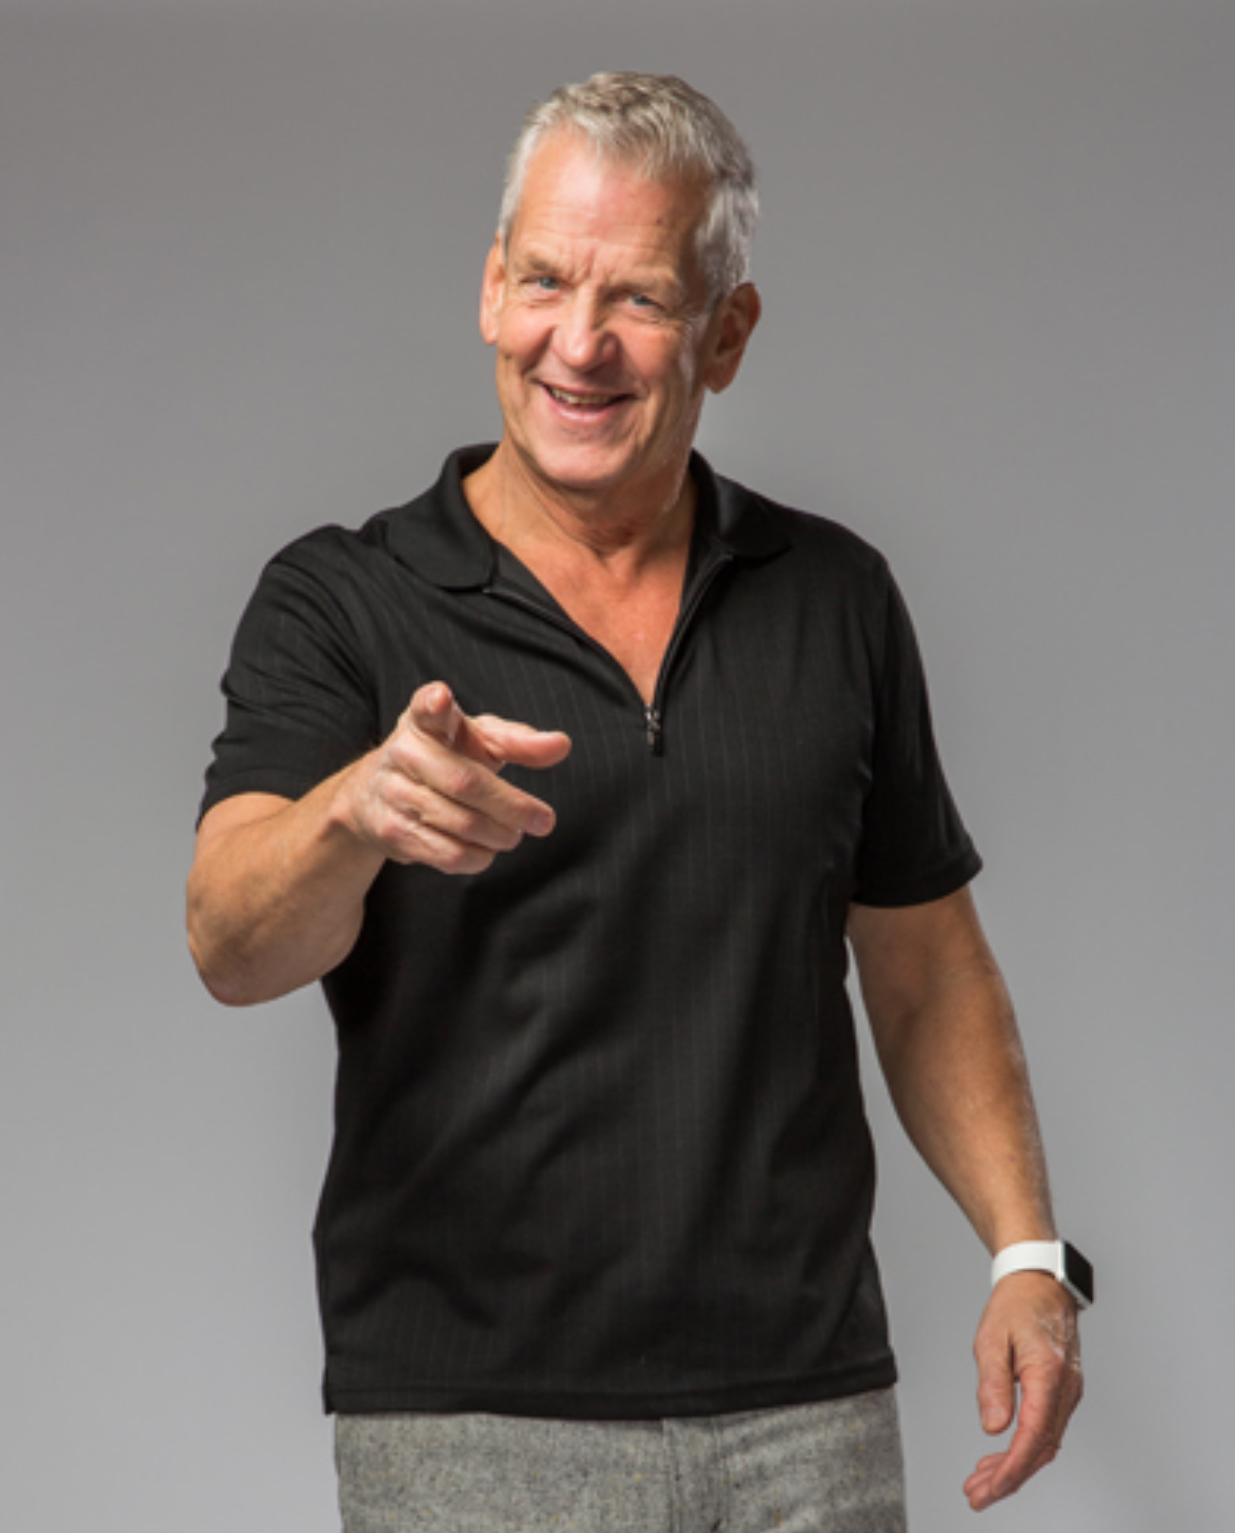 The 67-year old son of father (?) and mother(?) Lenny Clarke in 2021 photo. Lenny Clarke earned a  million dollar salary - leaving the net worth at  million in 2021